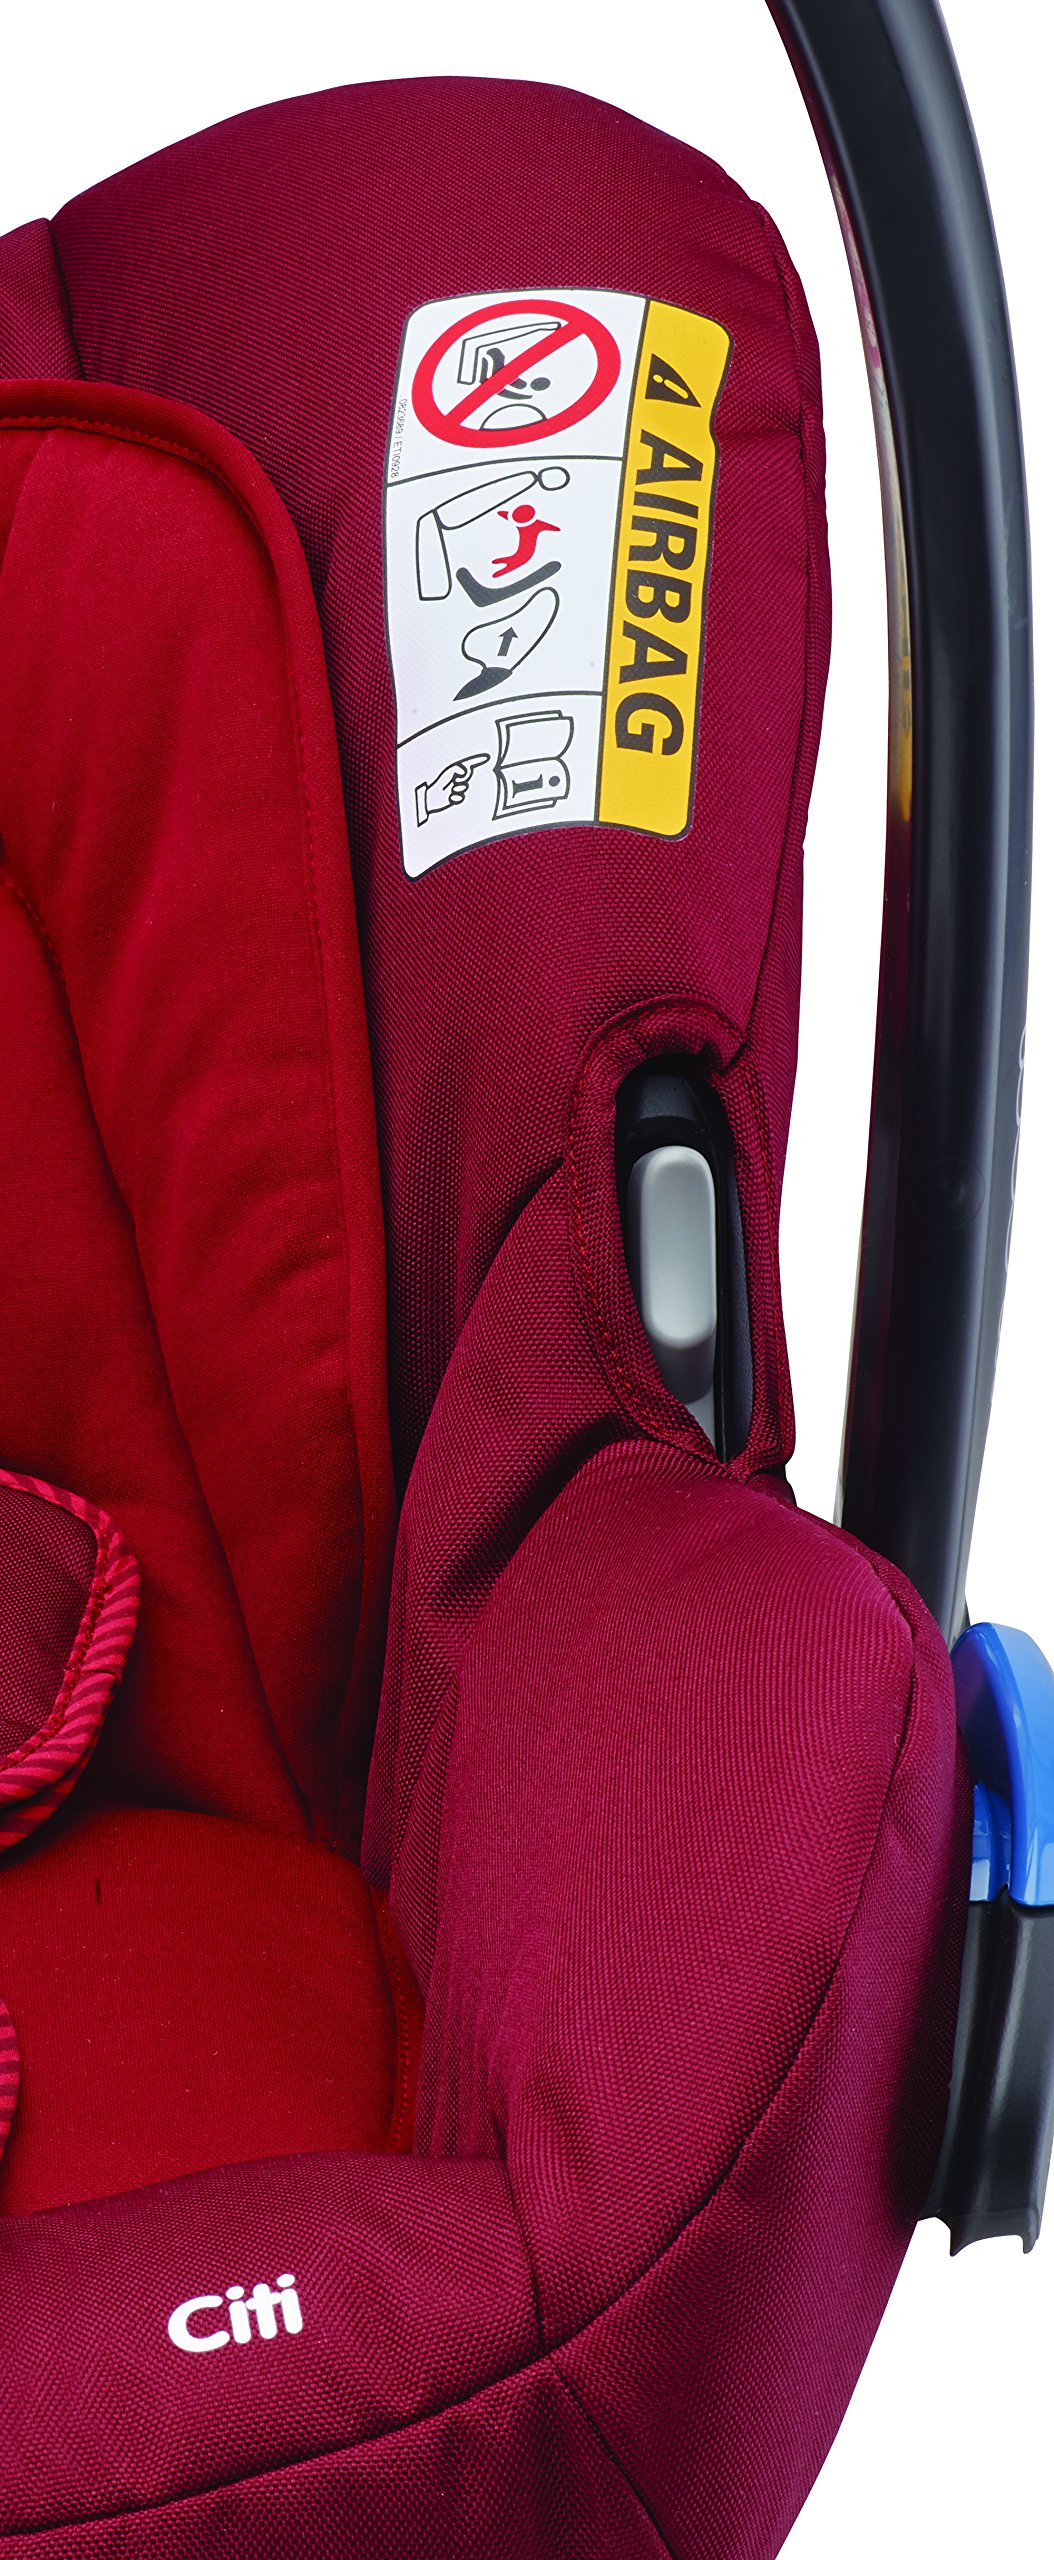 Maxi-Cosi Kinderautositz Citi Robin Red Maxi-Cosi Side protection system, guarantees optimal protection in the event of a side impact Lightweight, light weight and ergonomically shaped safety bar for use as carrying handle Practical travel system 9